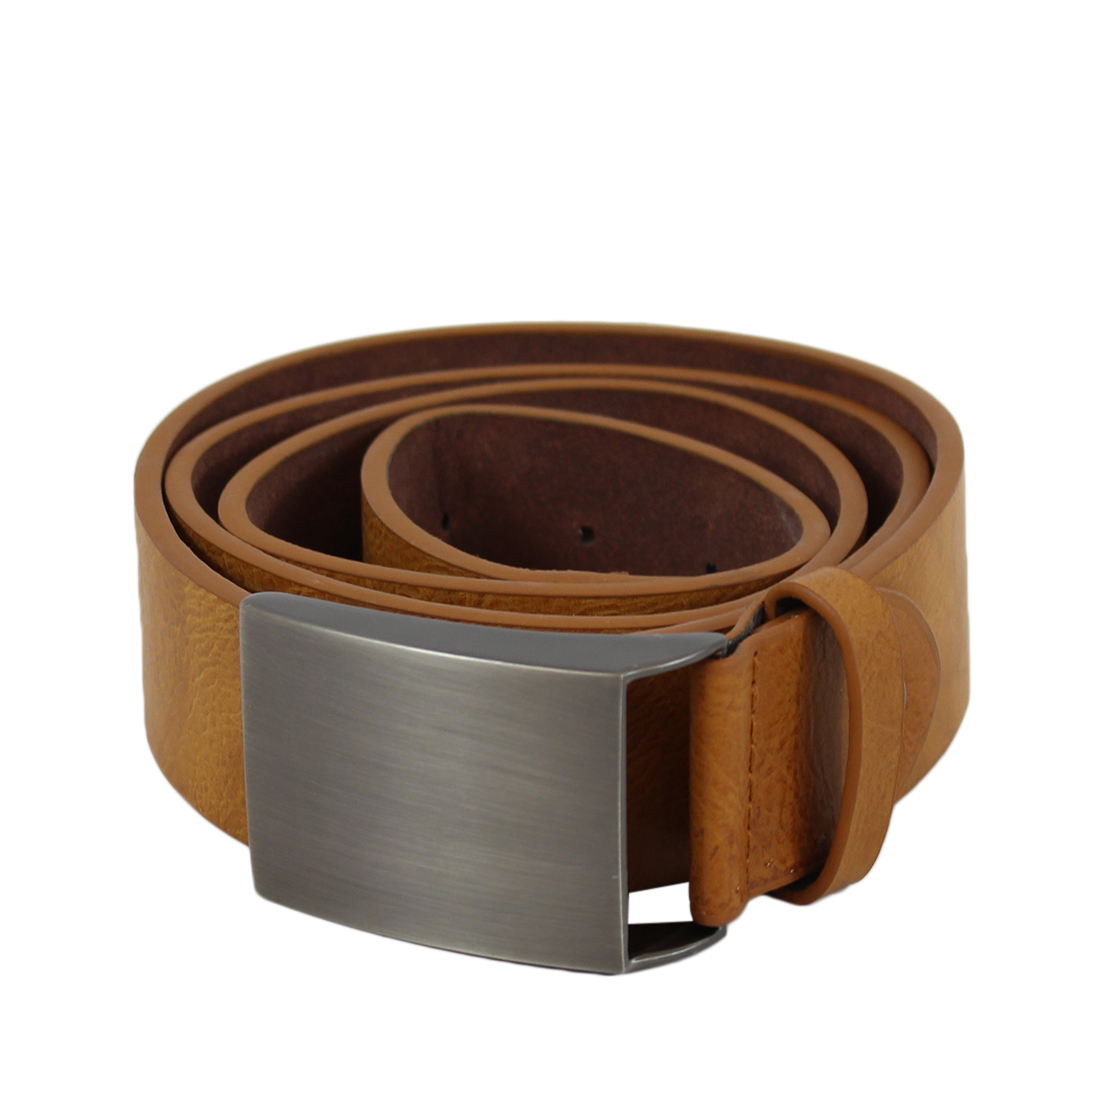 Plain wide leather belt with metal buckle